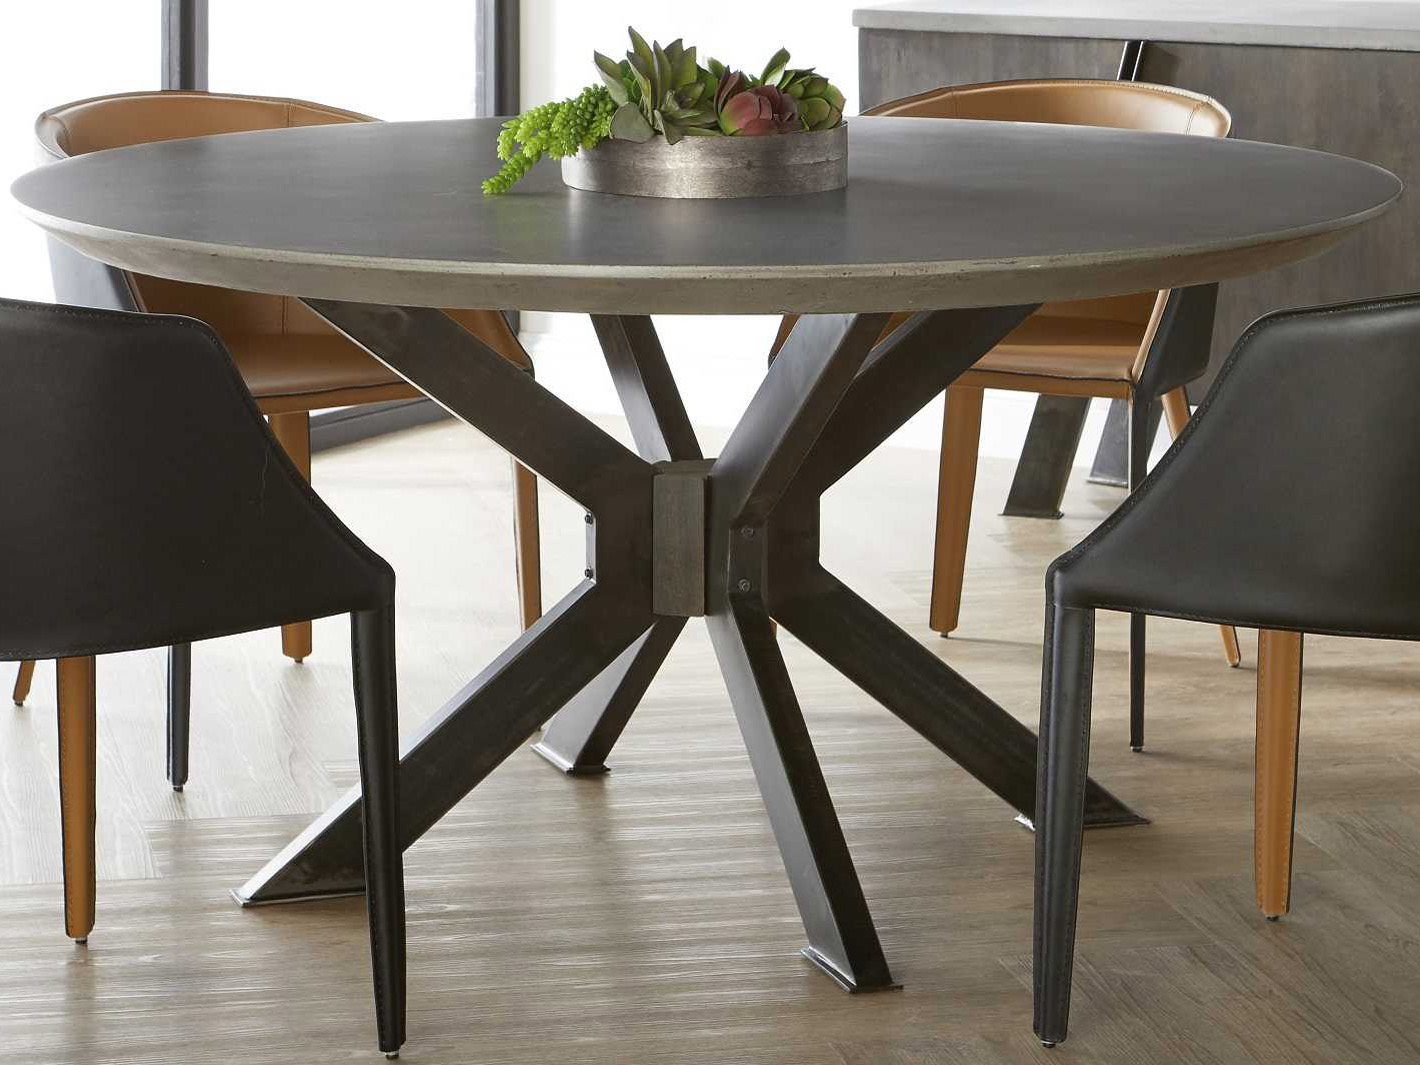 Essential For Living District Ash Grey Distressed Black 60 Wide Round Dining Table Esl4632rdblkagry